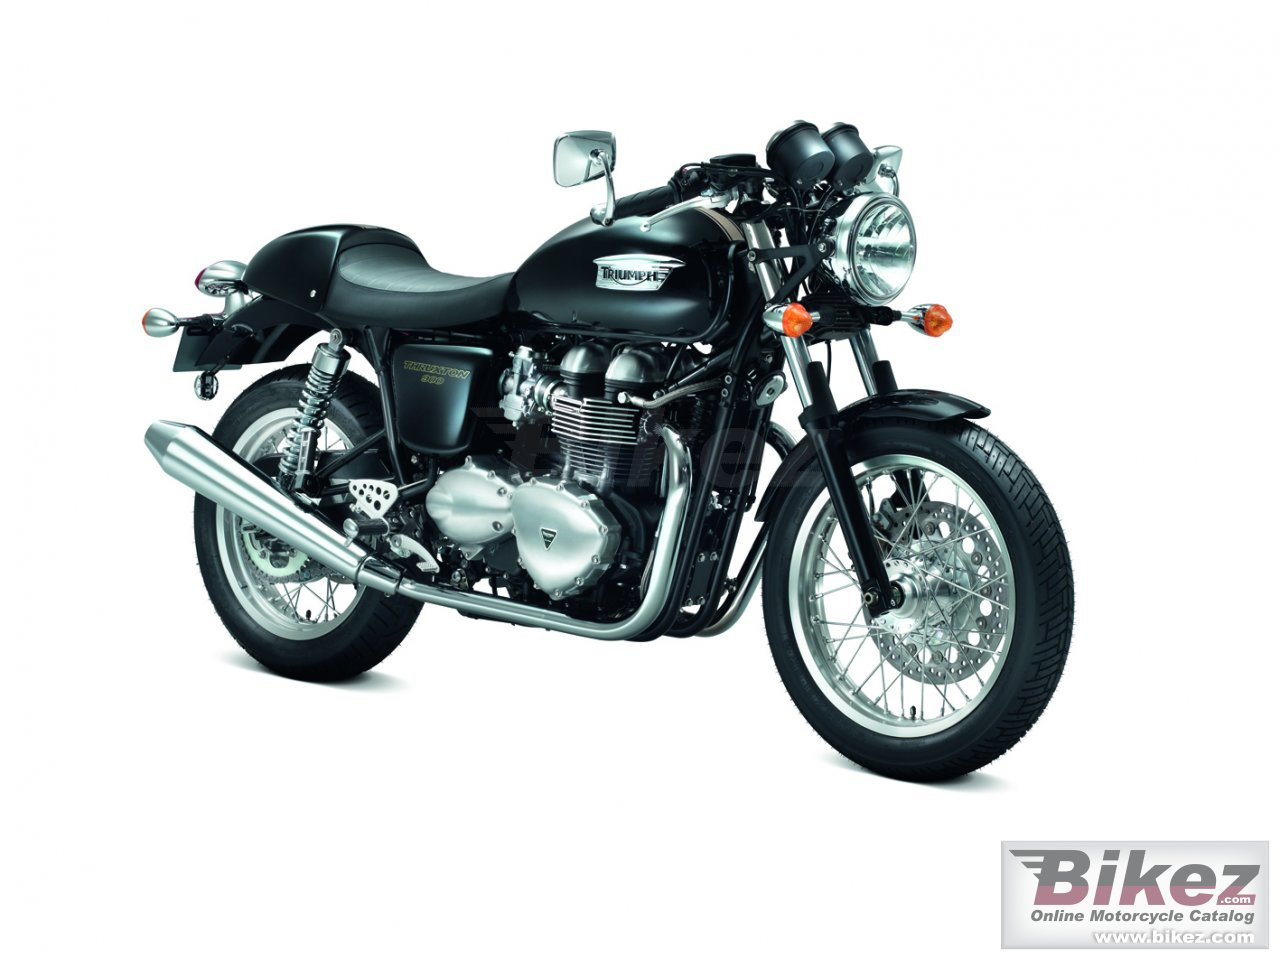 Big Triumph thruxton picture and wallpaper from Bikez.com